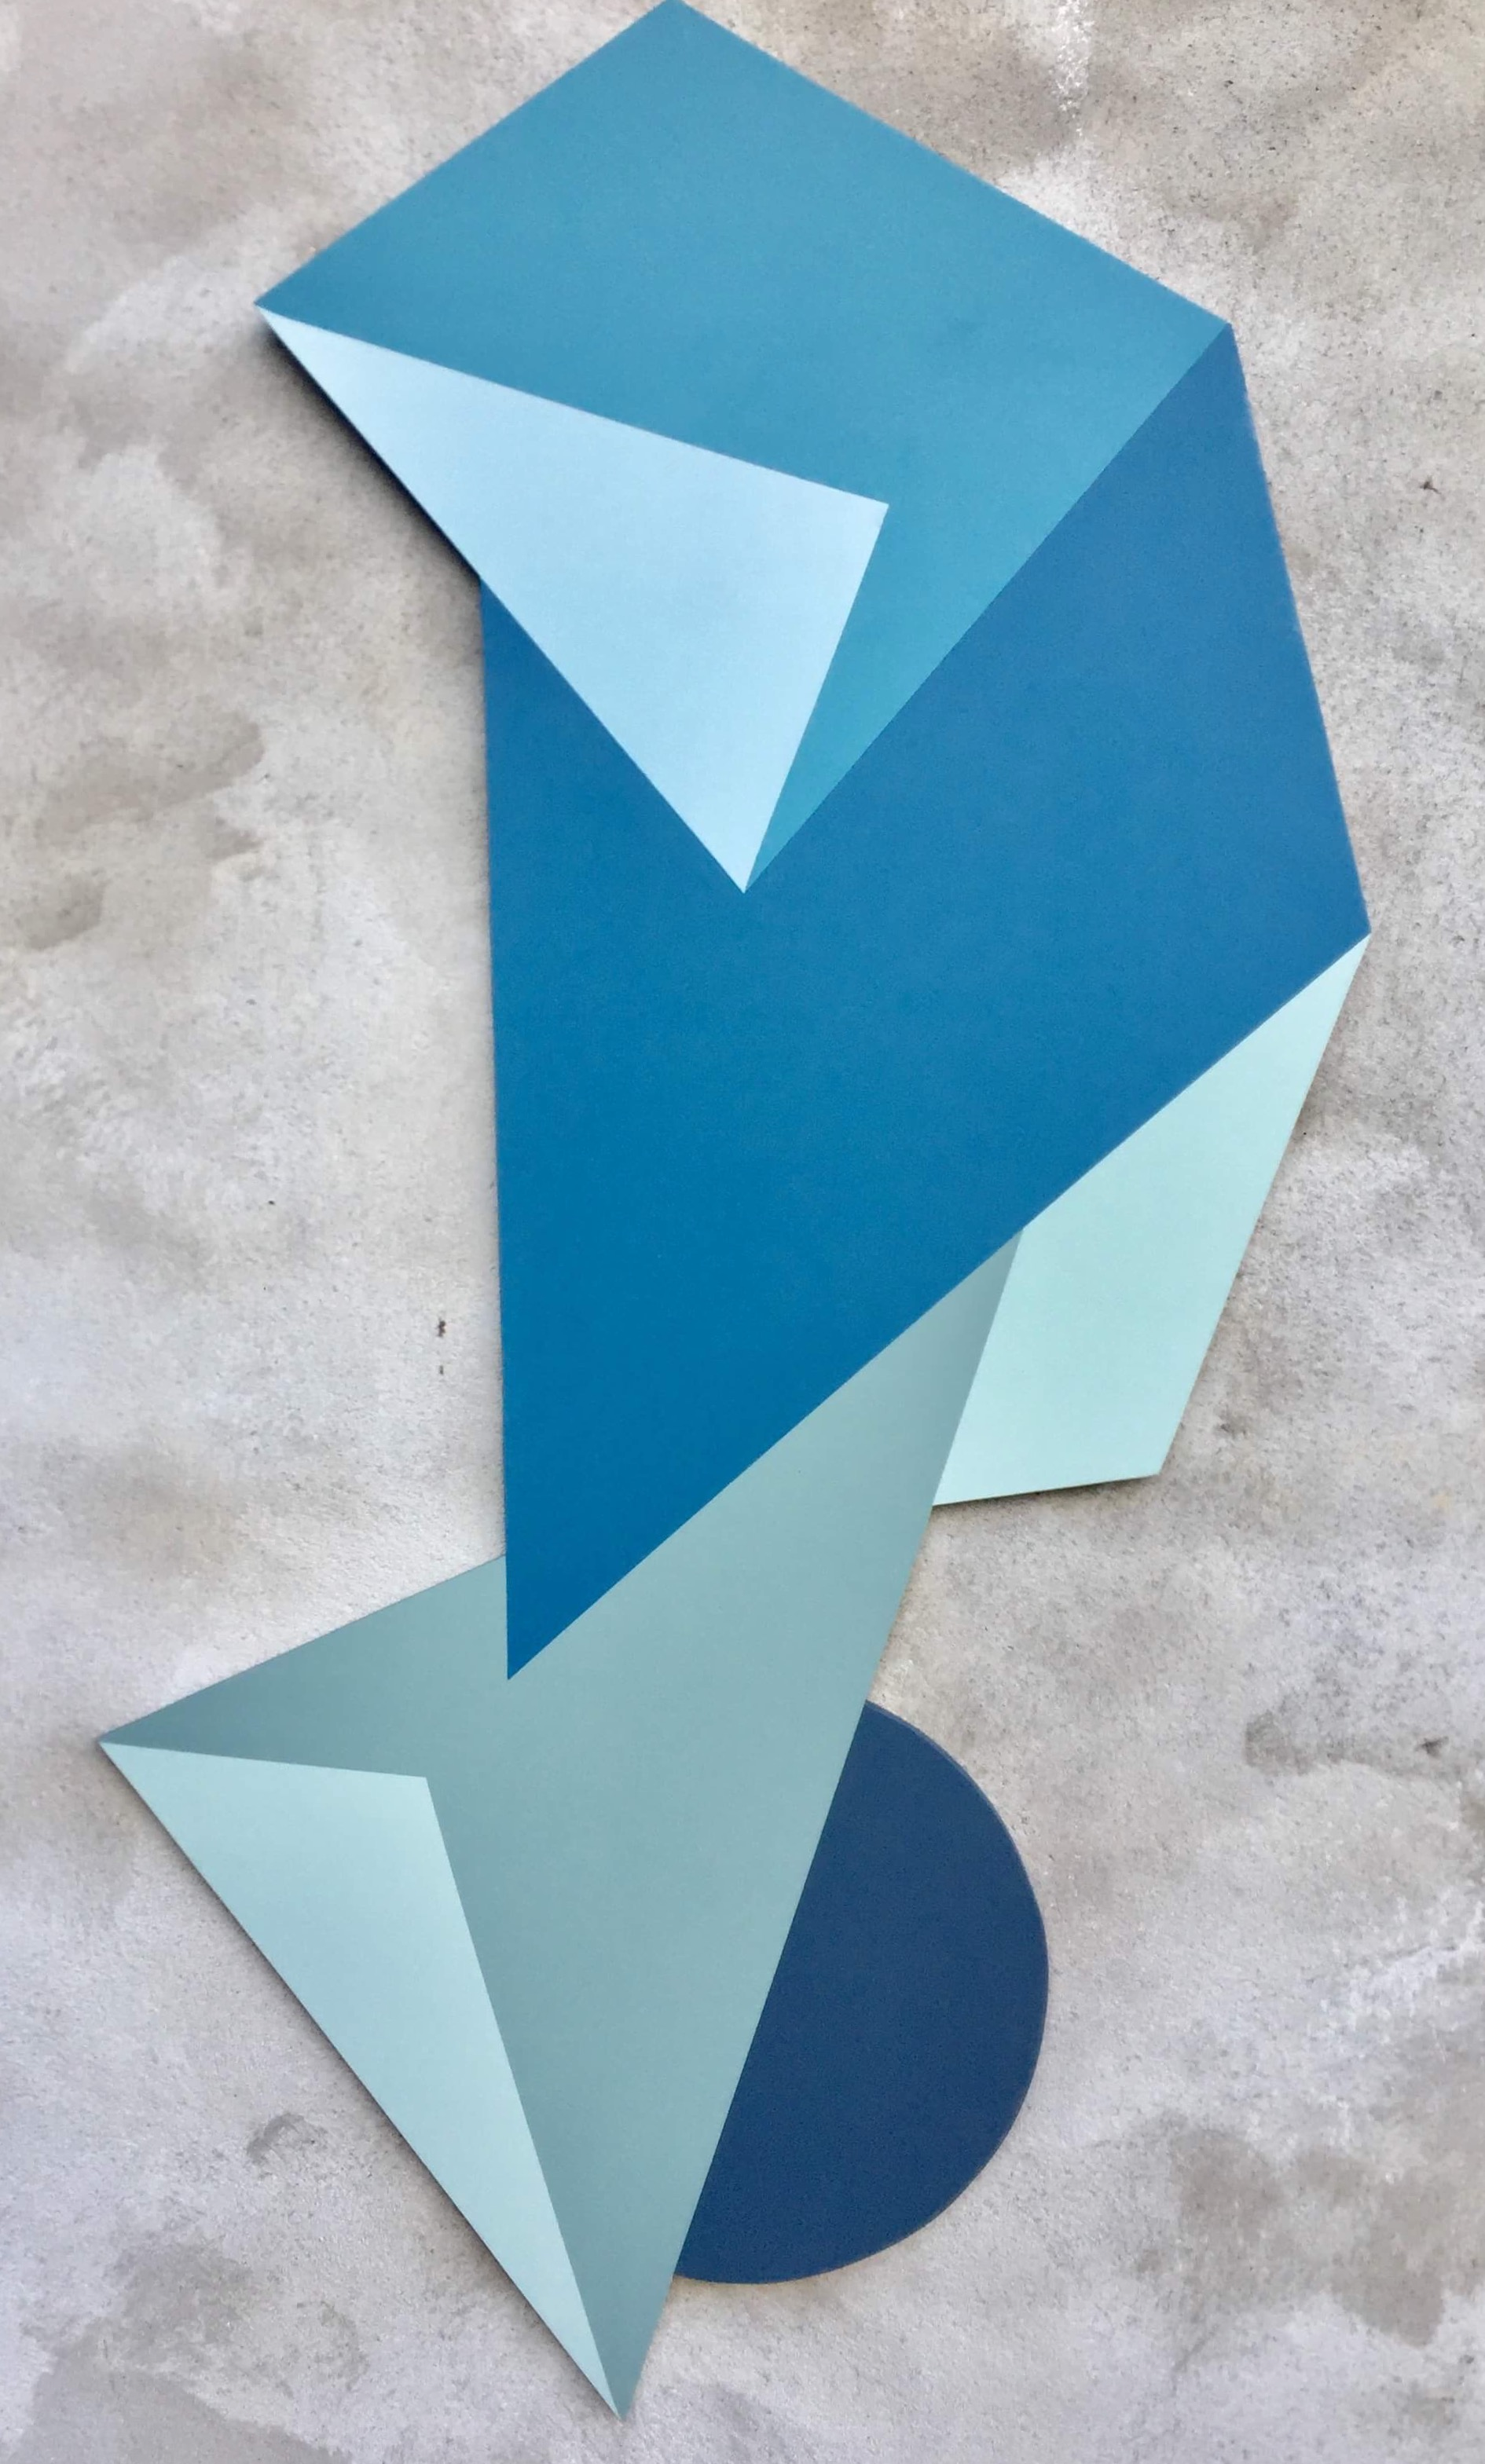 Geometric cut. Acrylic on panel. By Henriette Fabricius